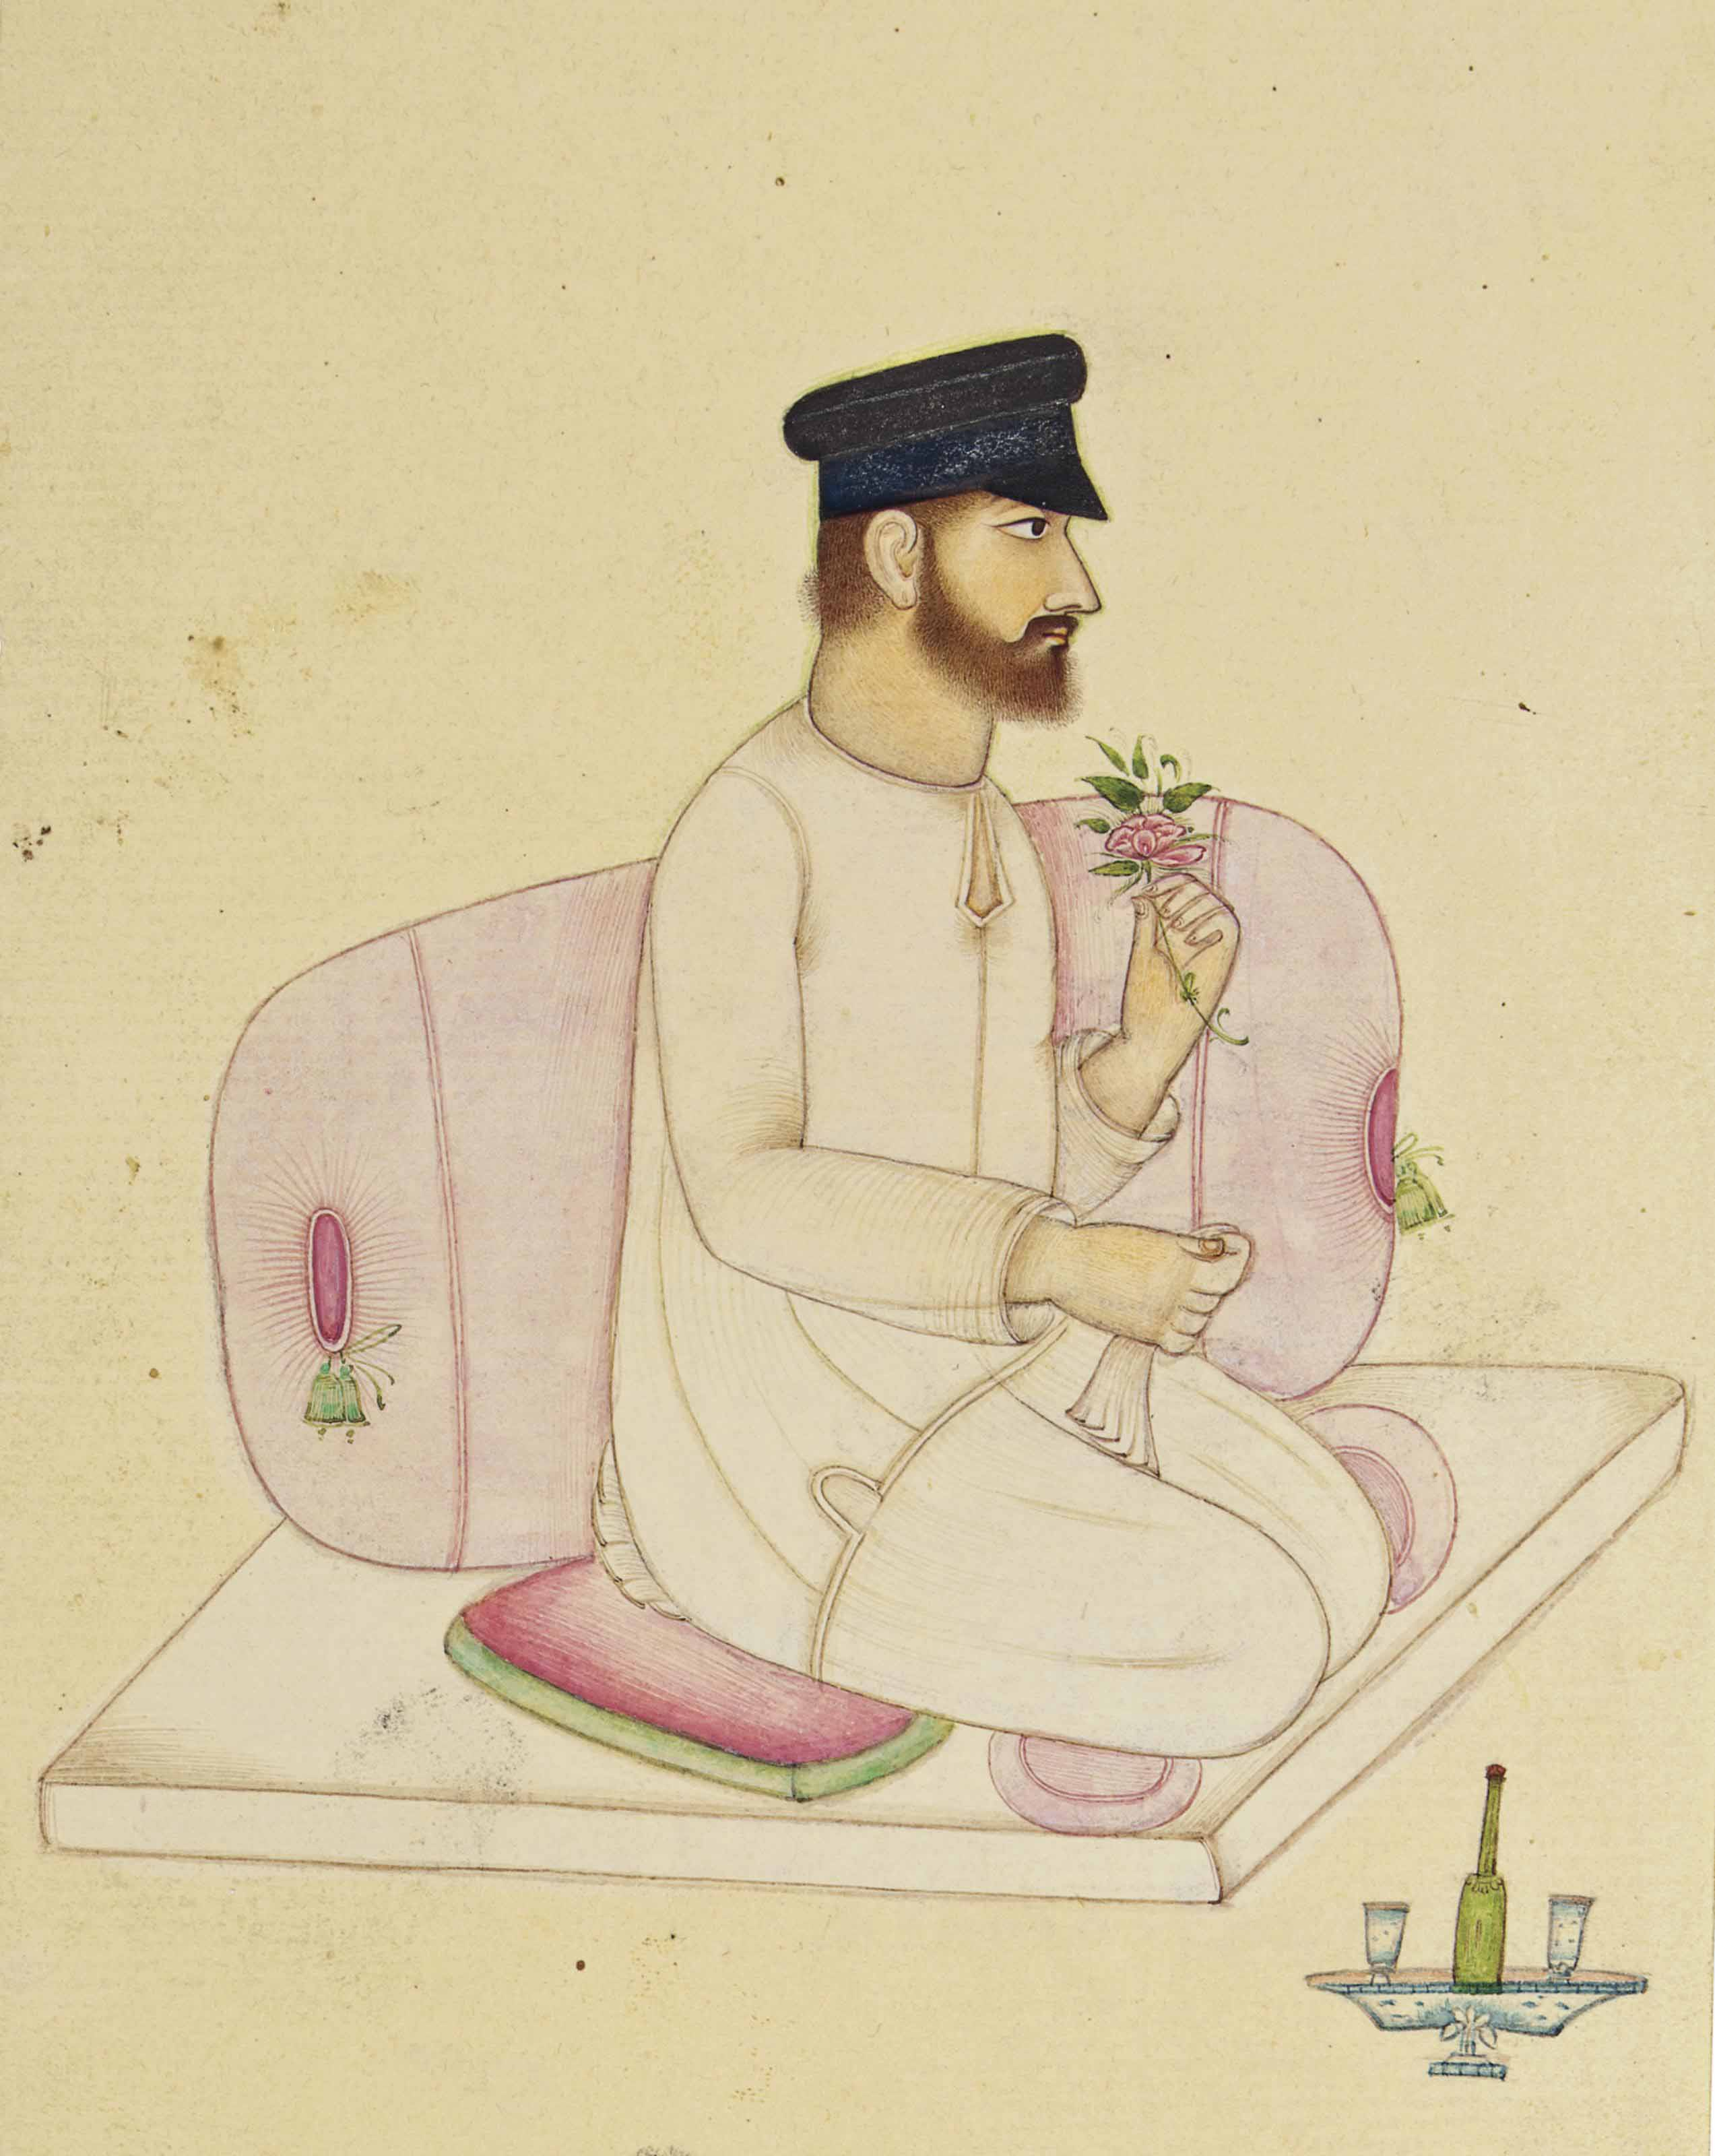 A PORTRAIT OF AN EAST INDIA CO